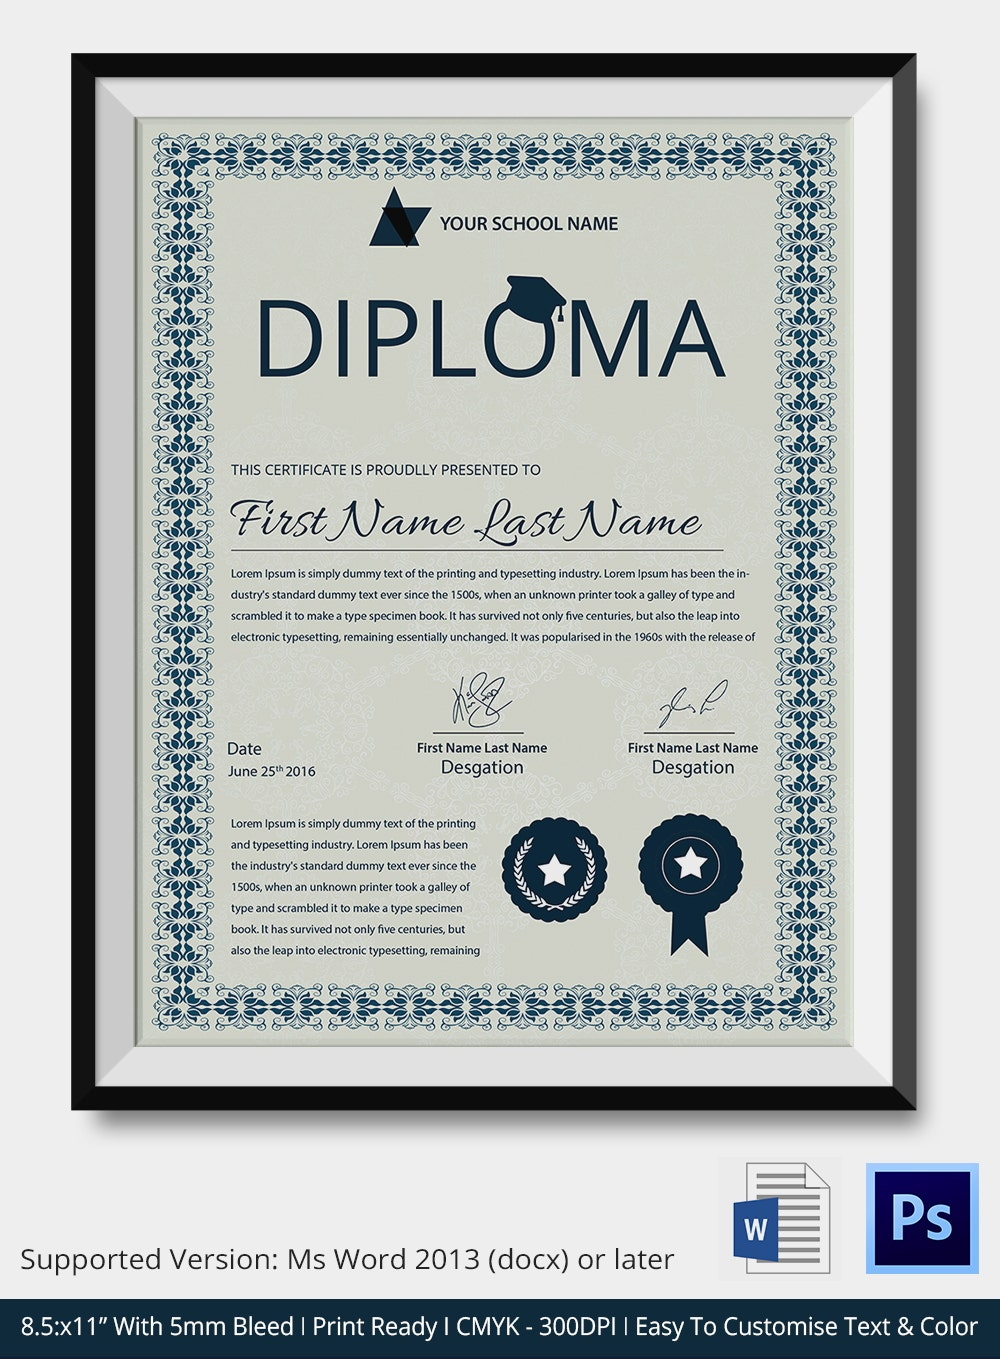 Diploma certificate sample fieldstation diploma certificate sample yelopaper Images